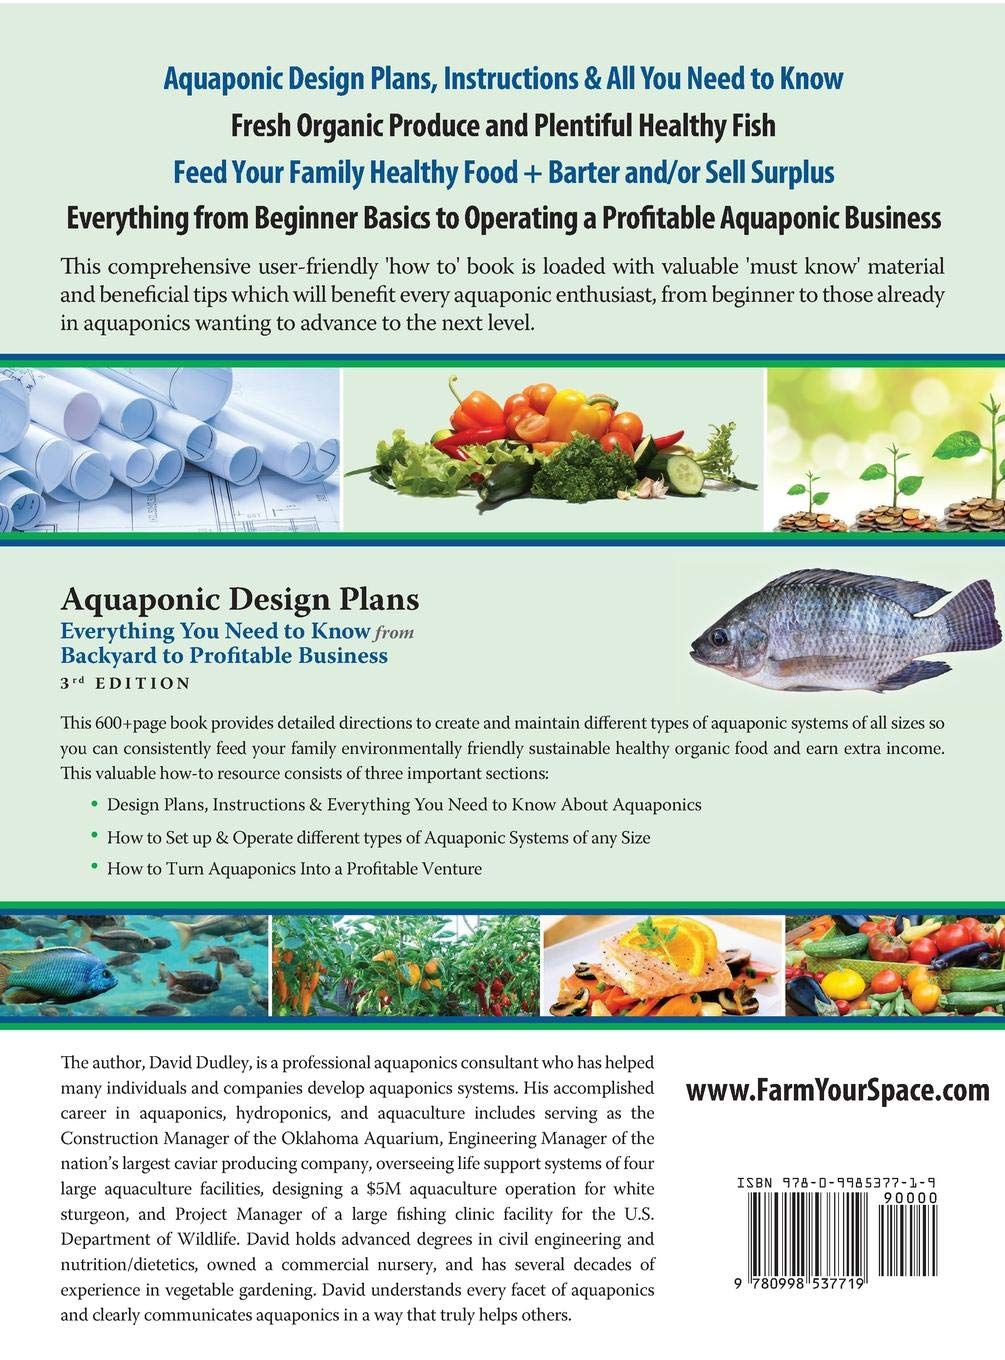 Aquaponic Design Plans, Everything You Need to Know: from